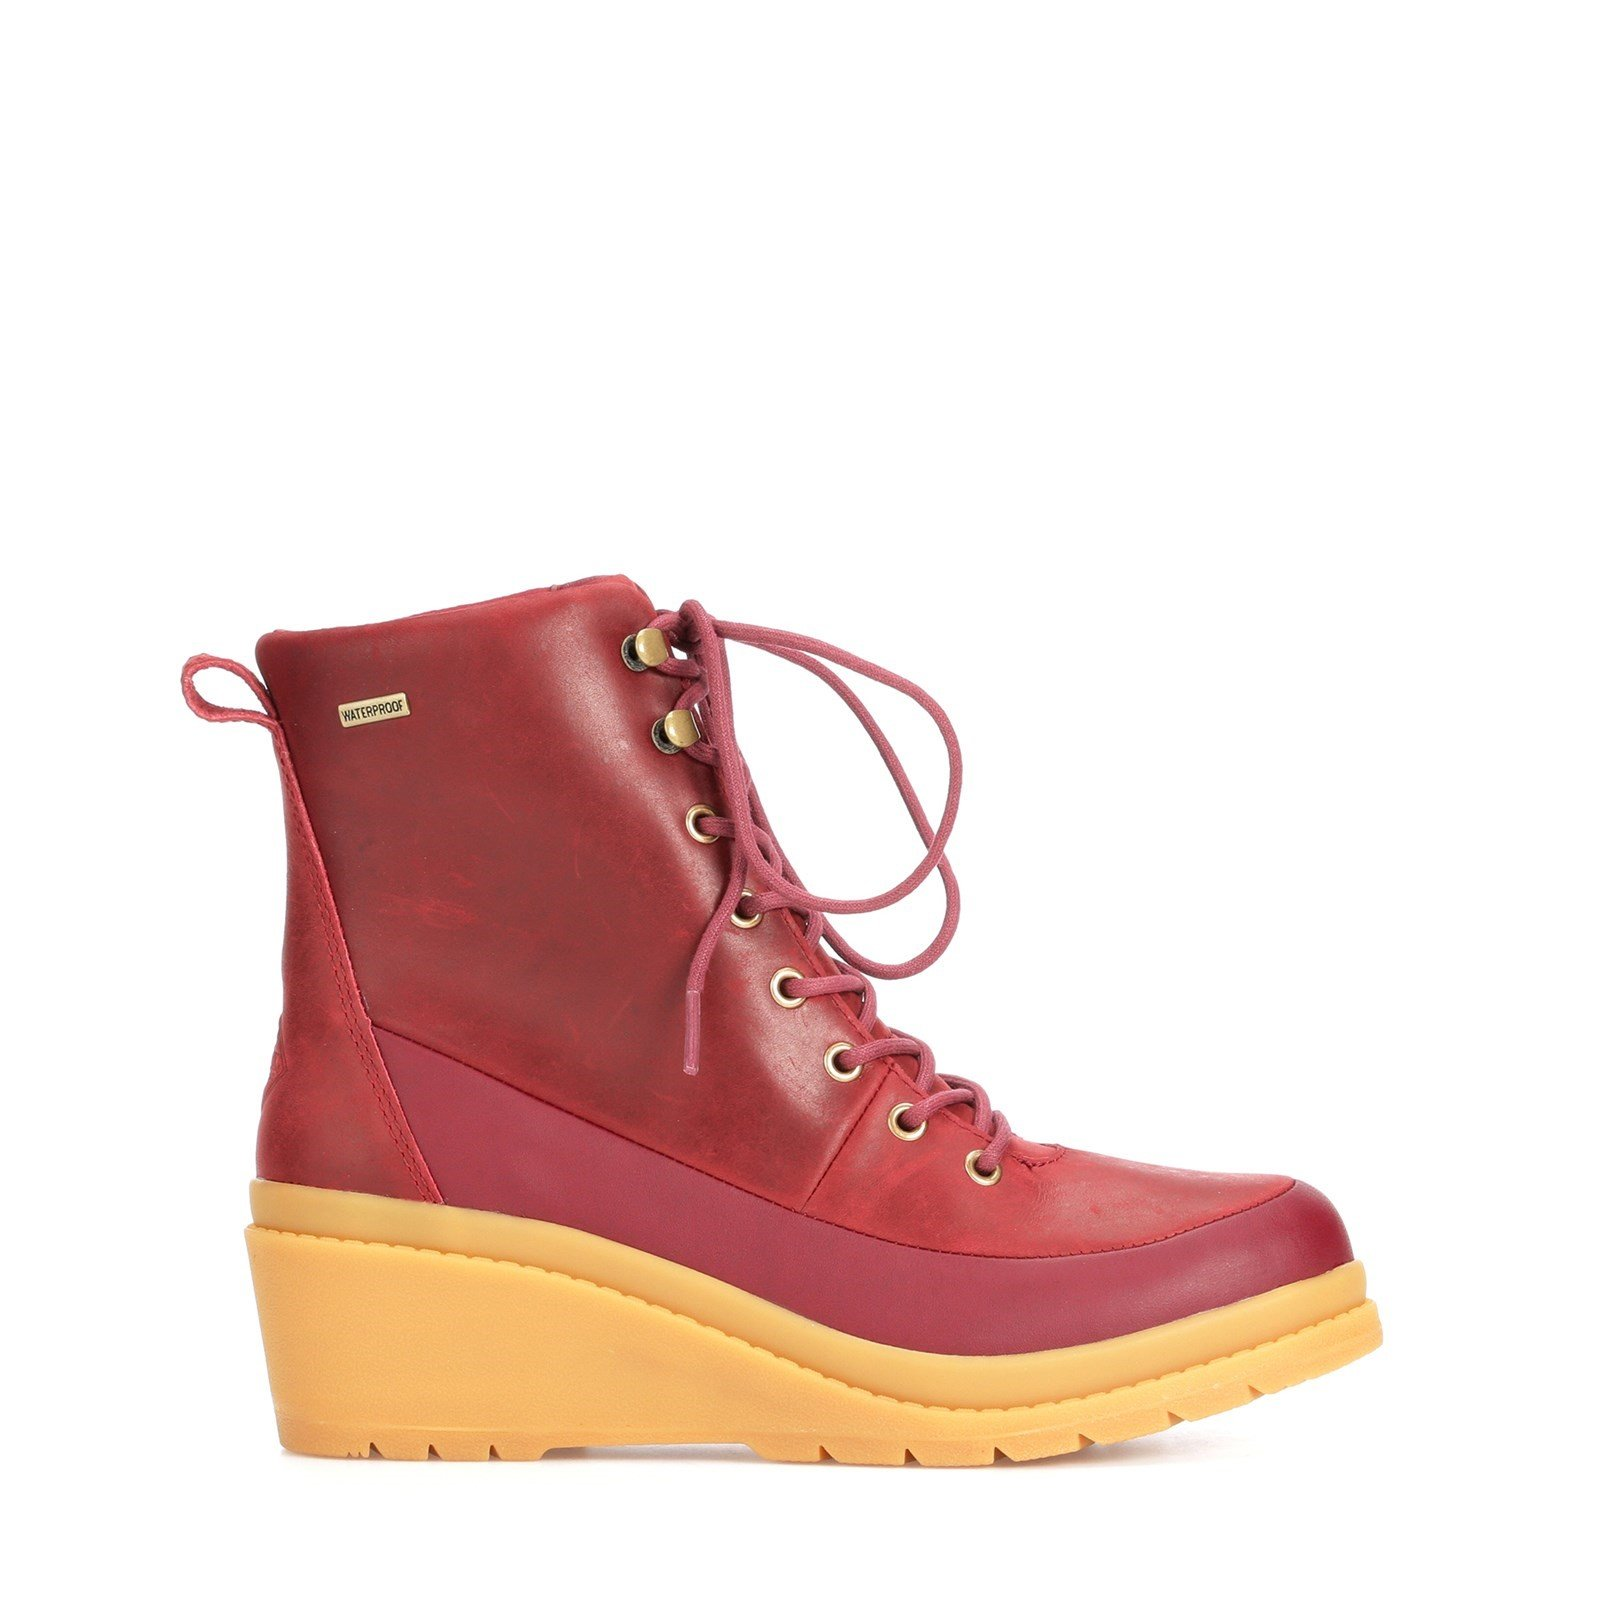 Muck Boots Women's Liberty Leather Ankle Boots Various Colours 31813 - Cordovan 5